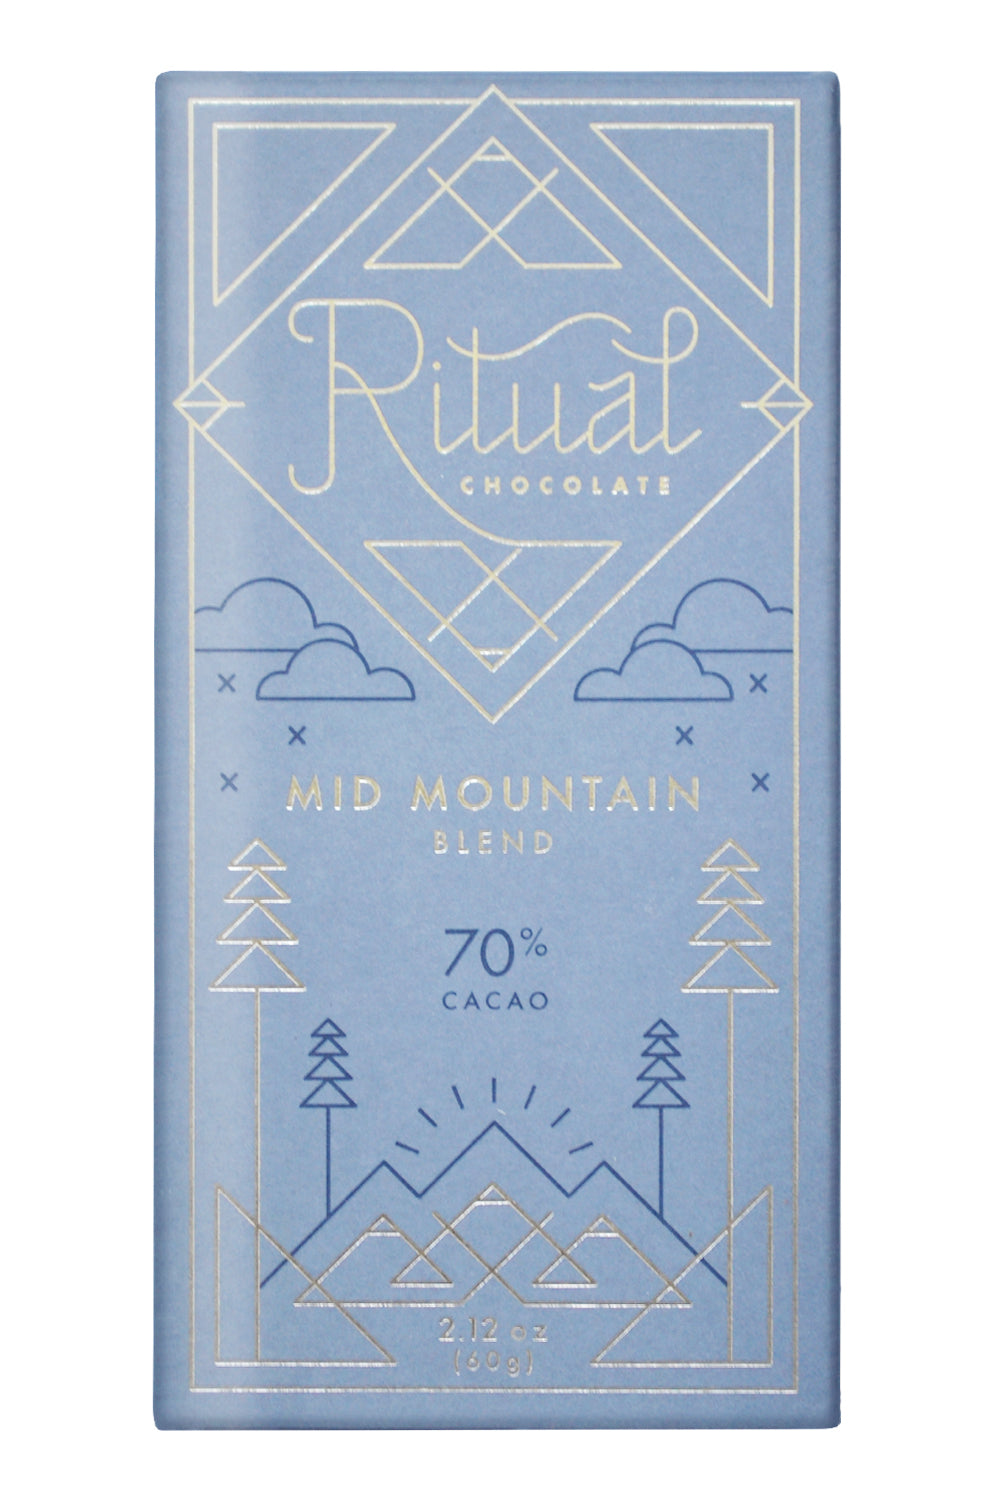 Ritual Dark Chocolate - Mid Mountain Blend